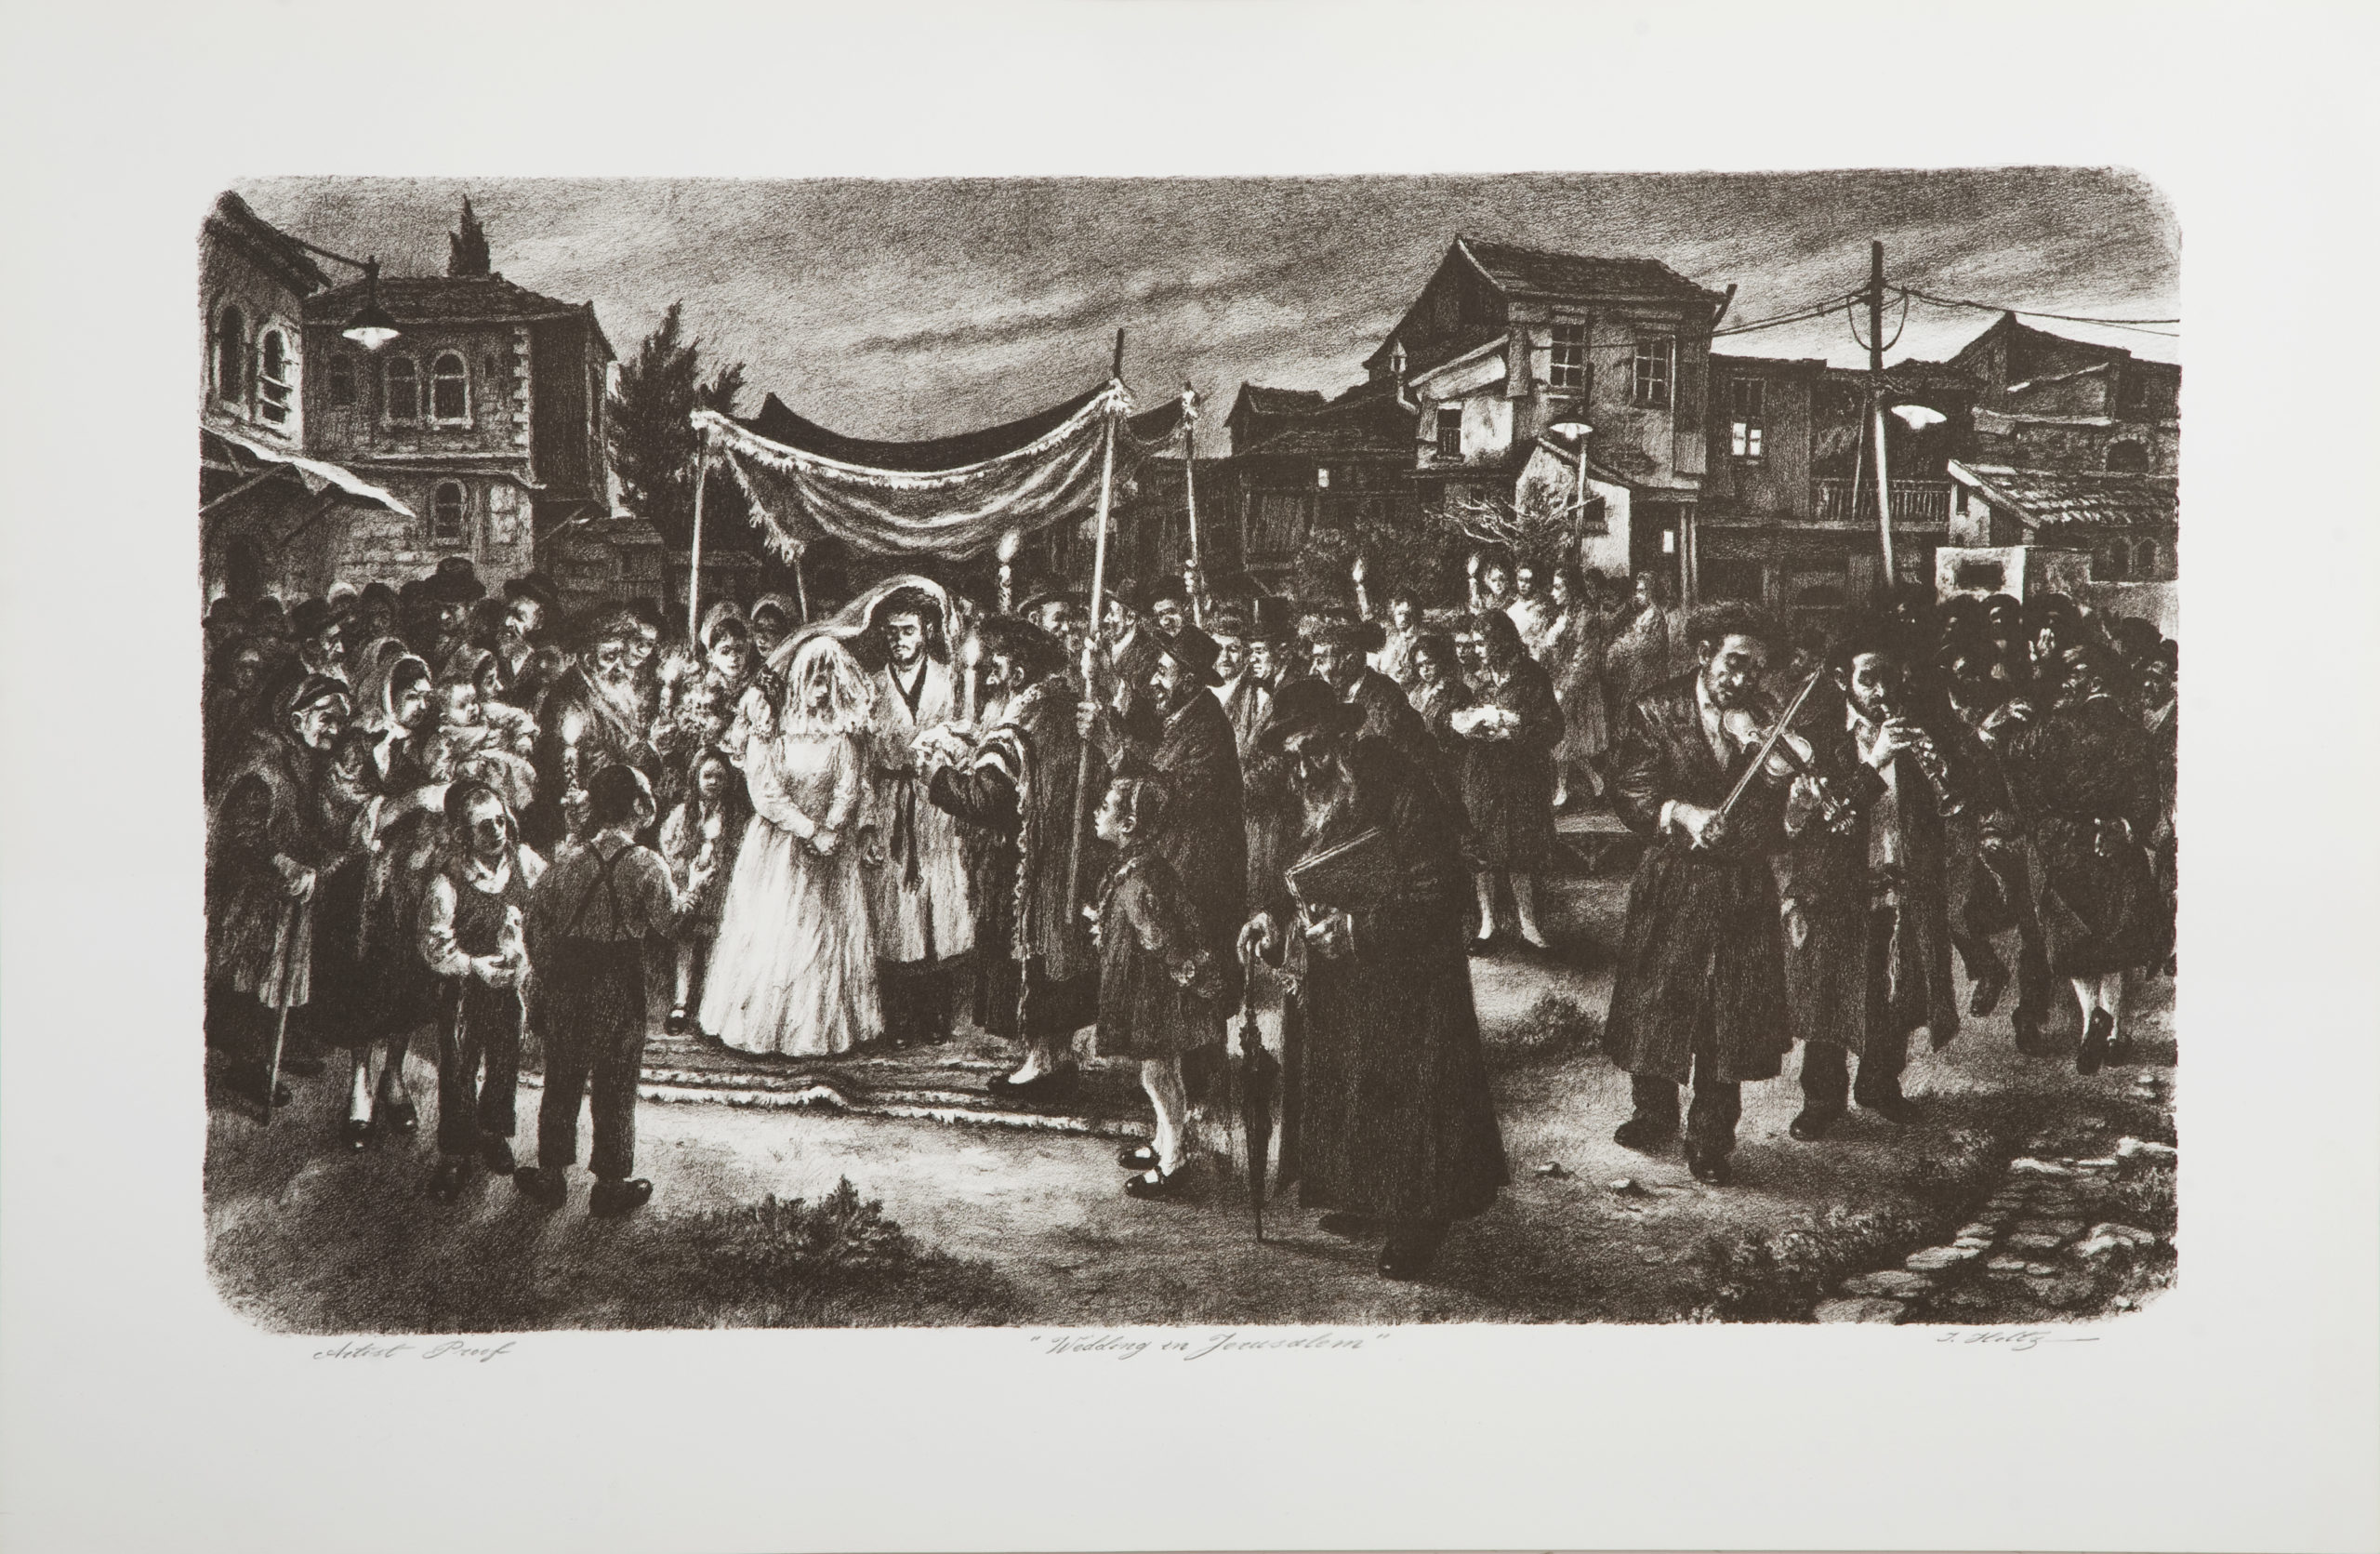 L37B Wedding in Jerusalem - Black and White - Lithograph - 32.5 x 22.5 - No Frame -$620